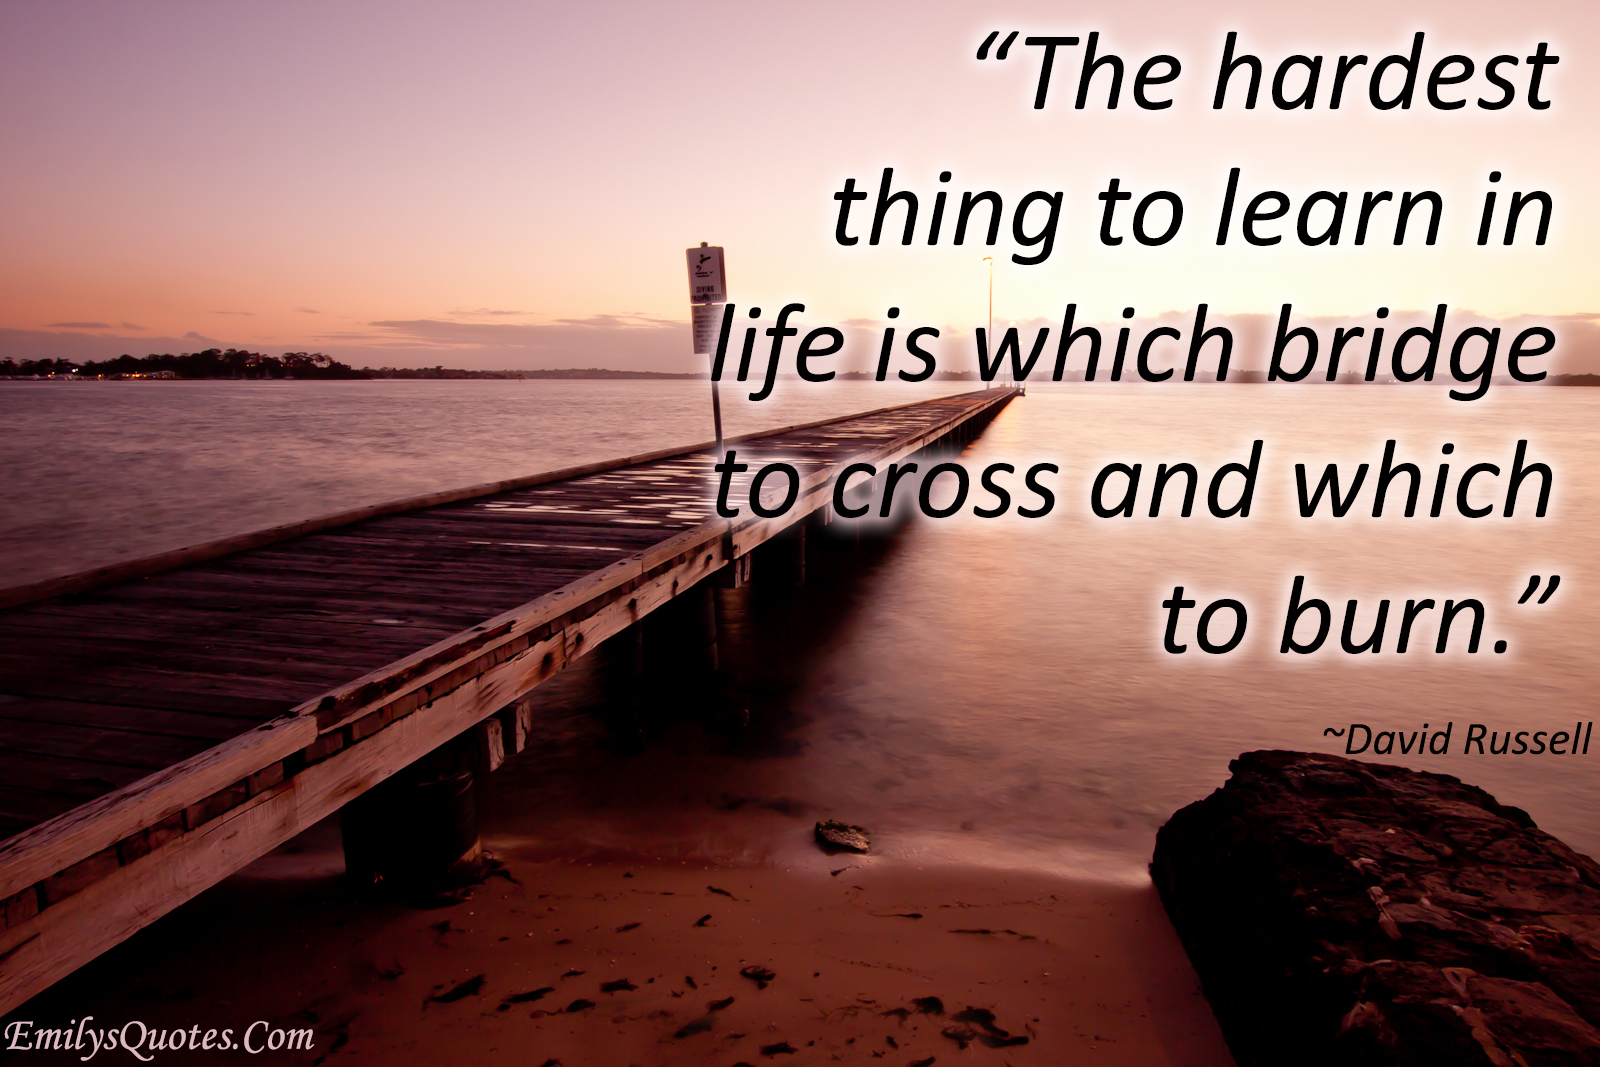 Life Quotes Com Brilliant The Hardest Thing To Learn In Life Is Which Bridge To Cross And